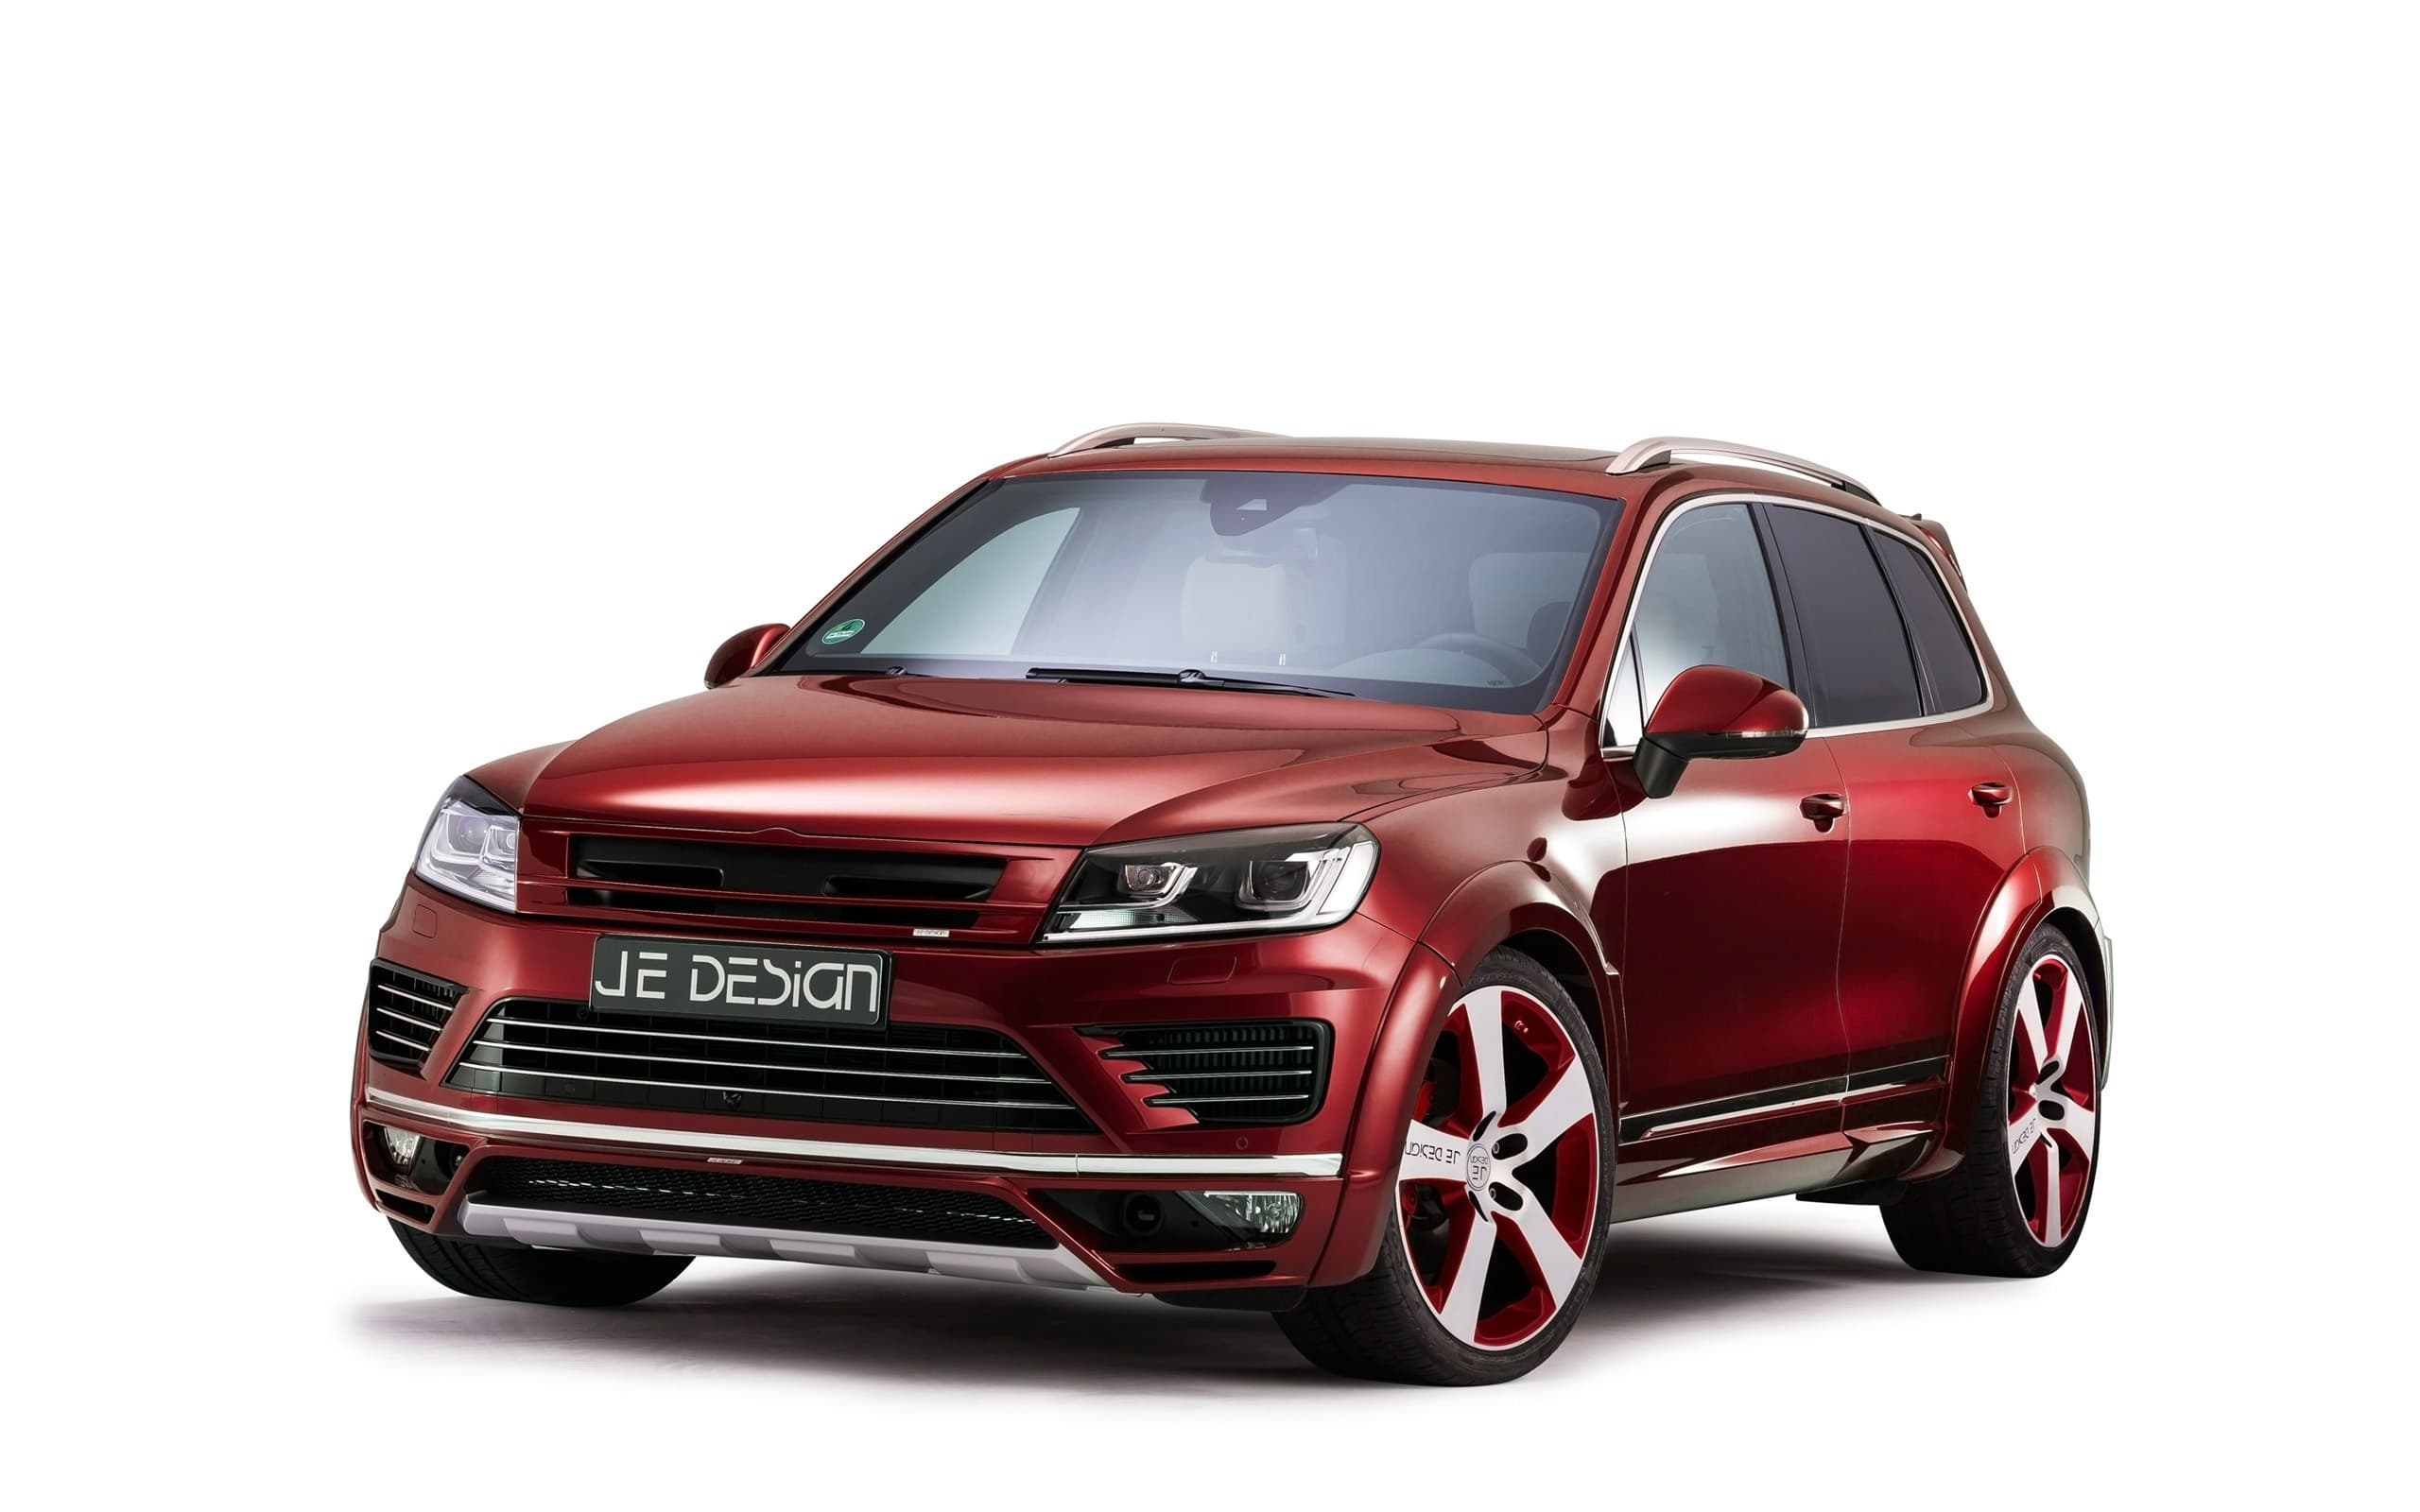 Volkswagen Touareg 2017 R Line Wallpapers HD red, wheels